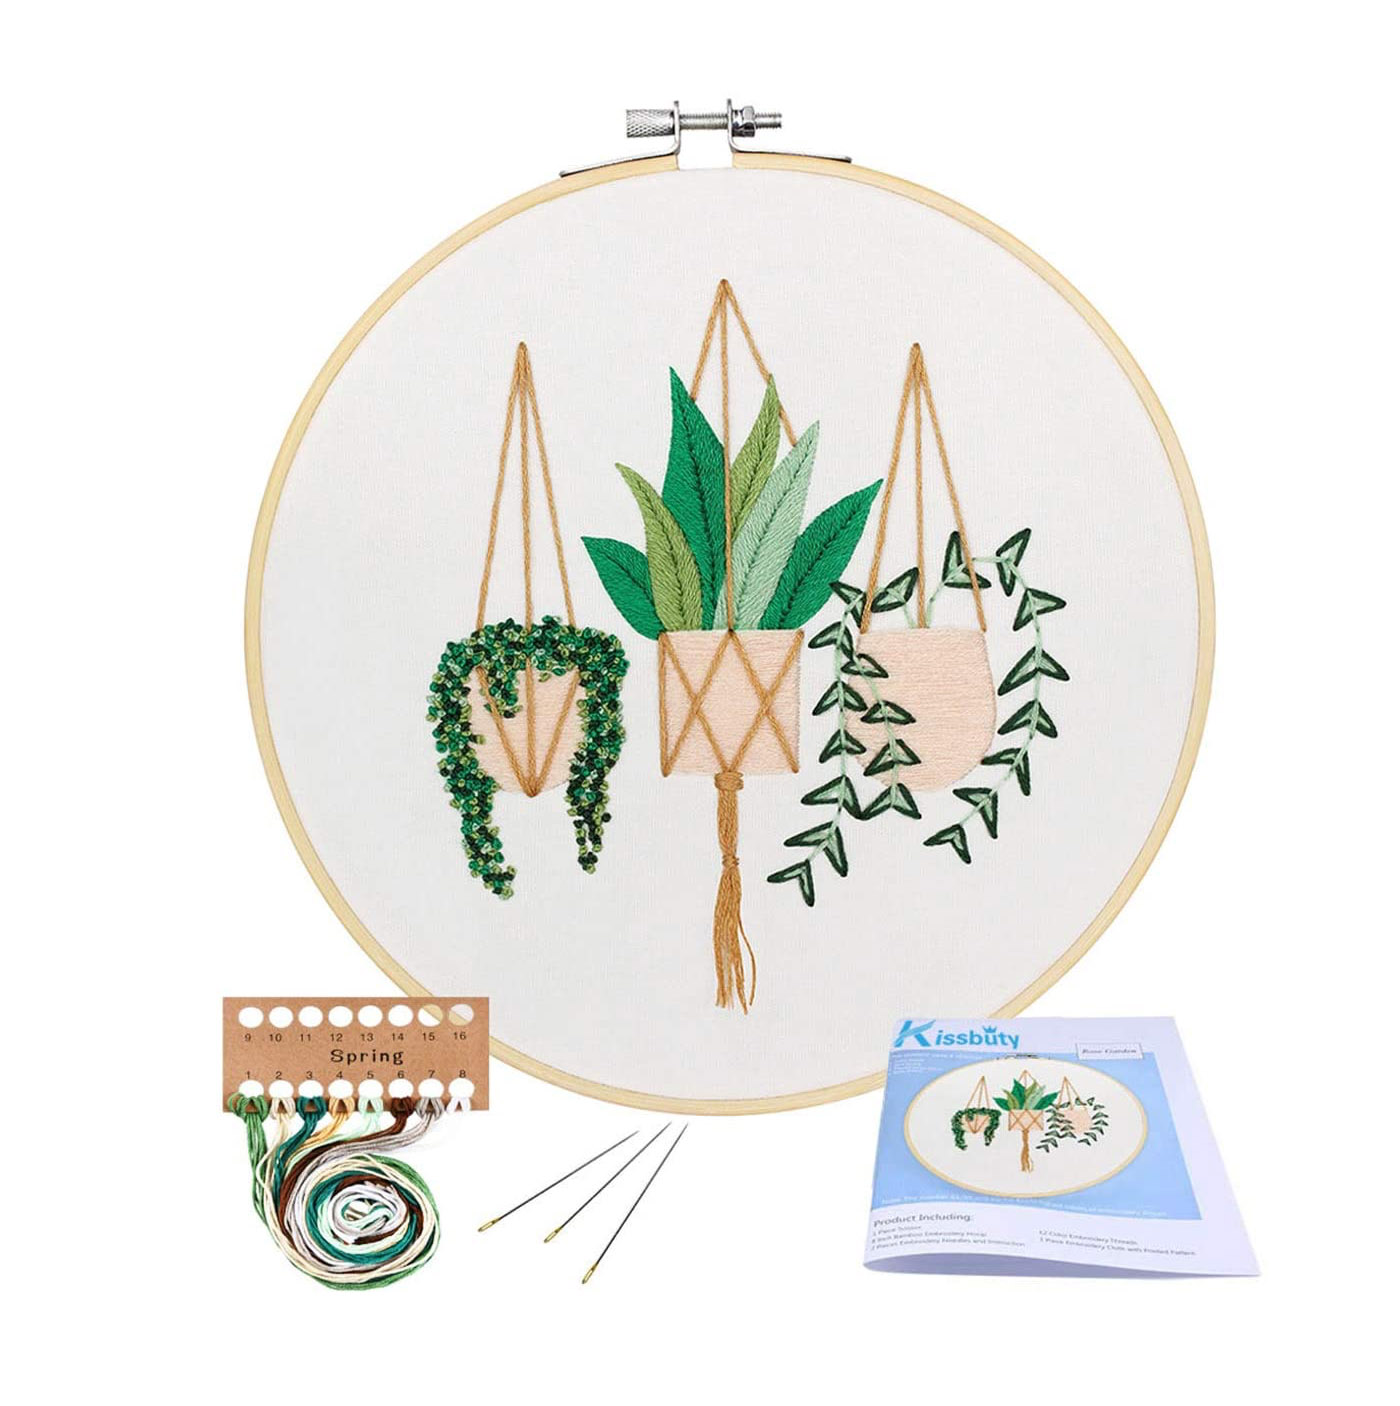 embroidery kit with hanging plants